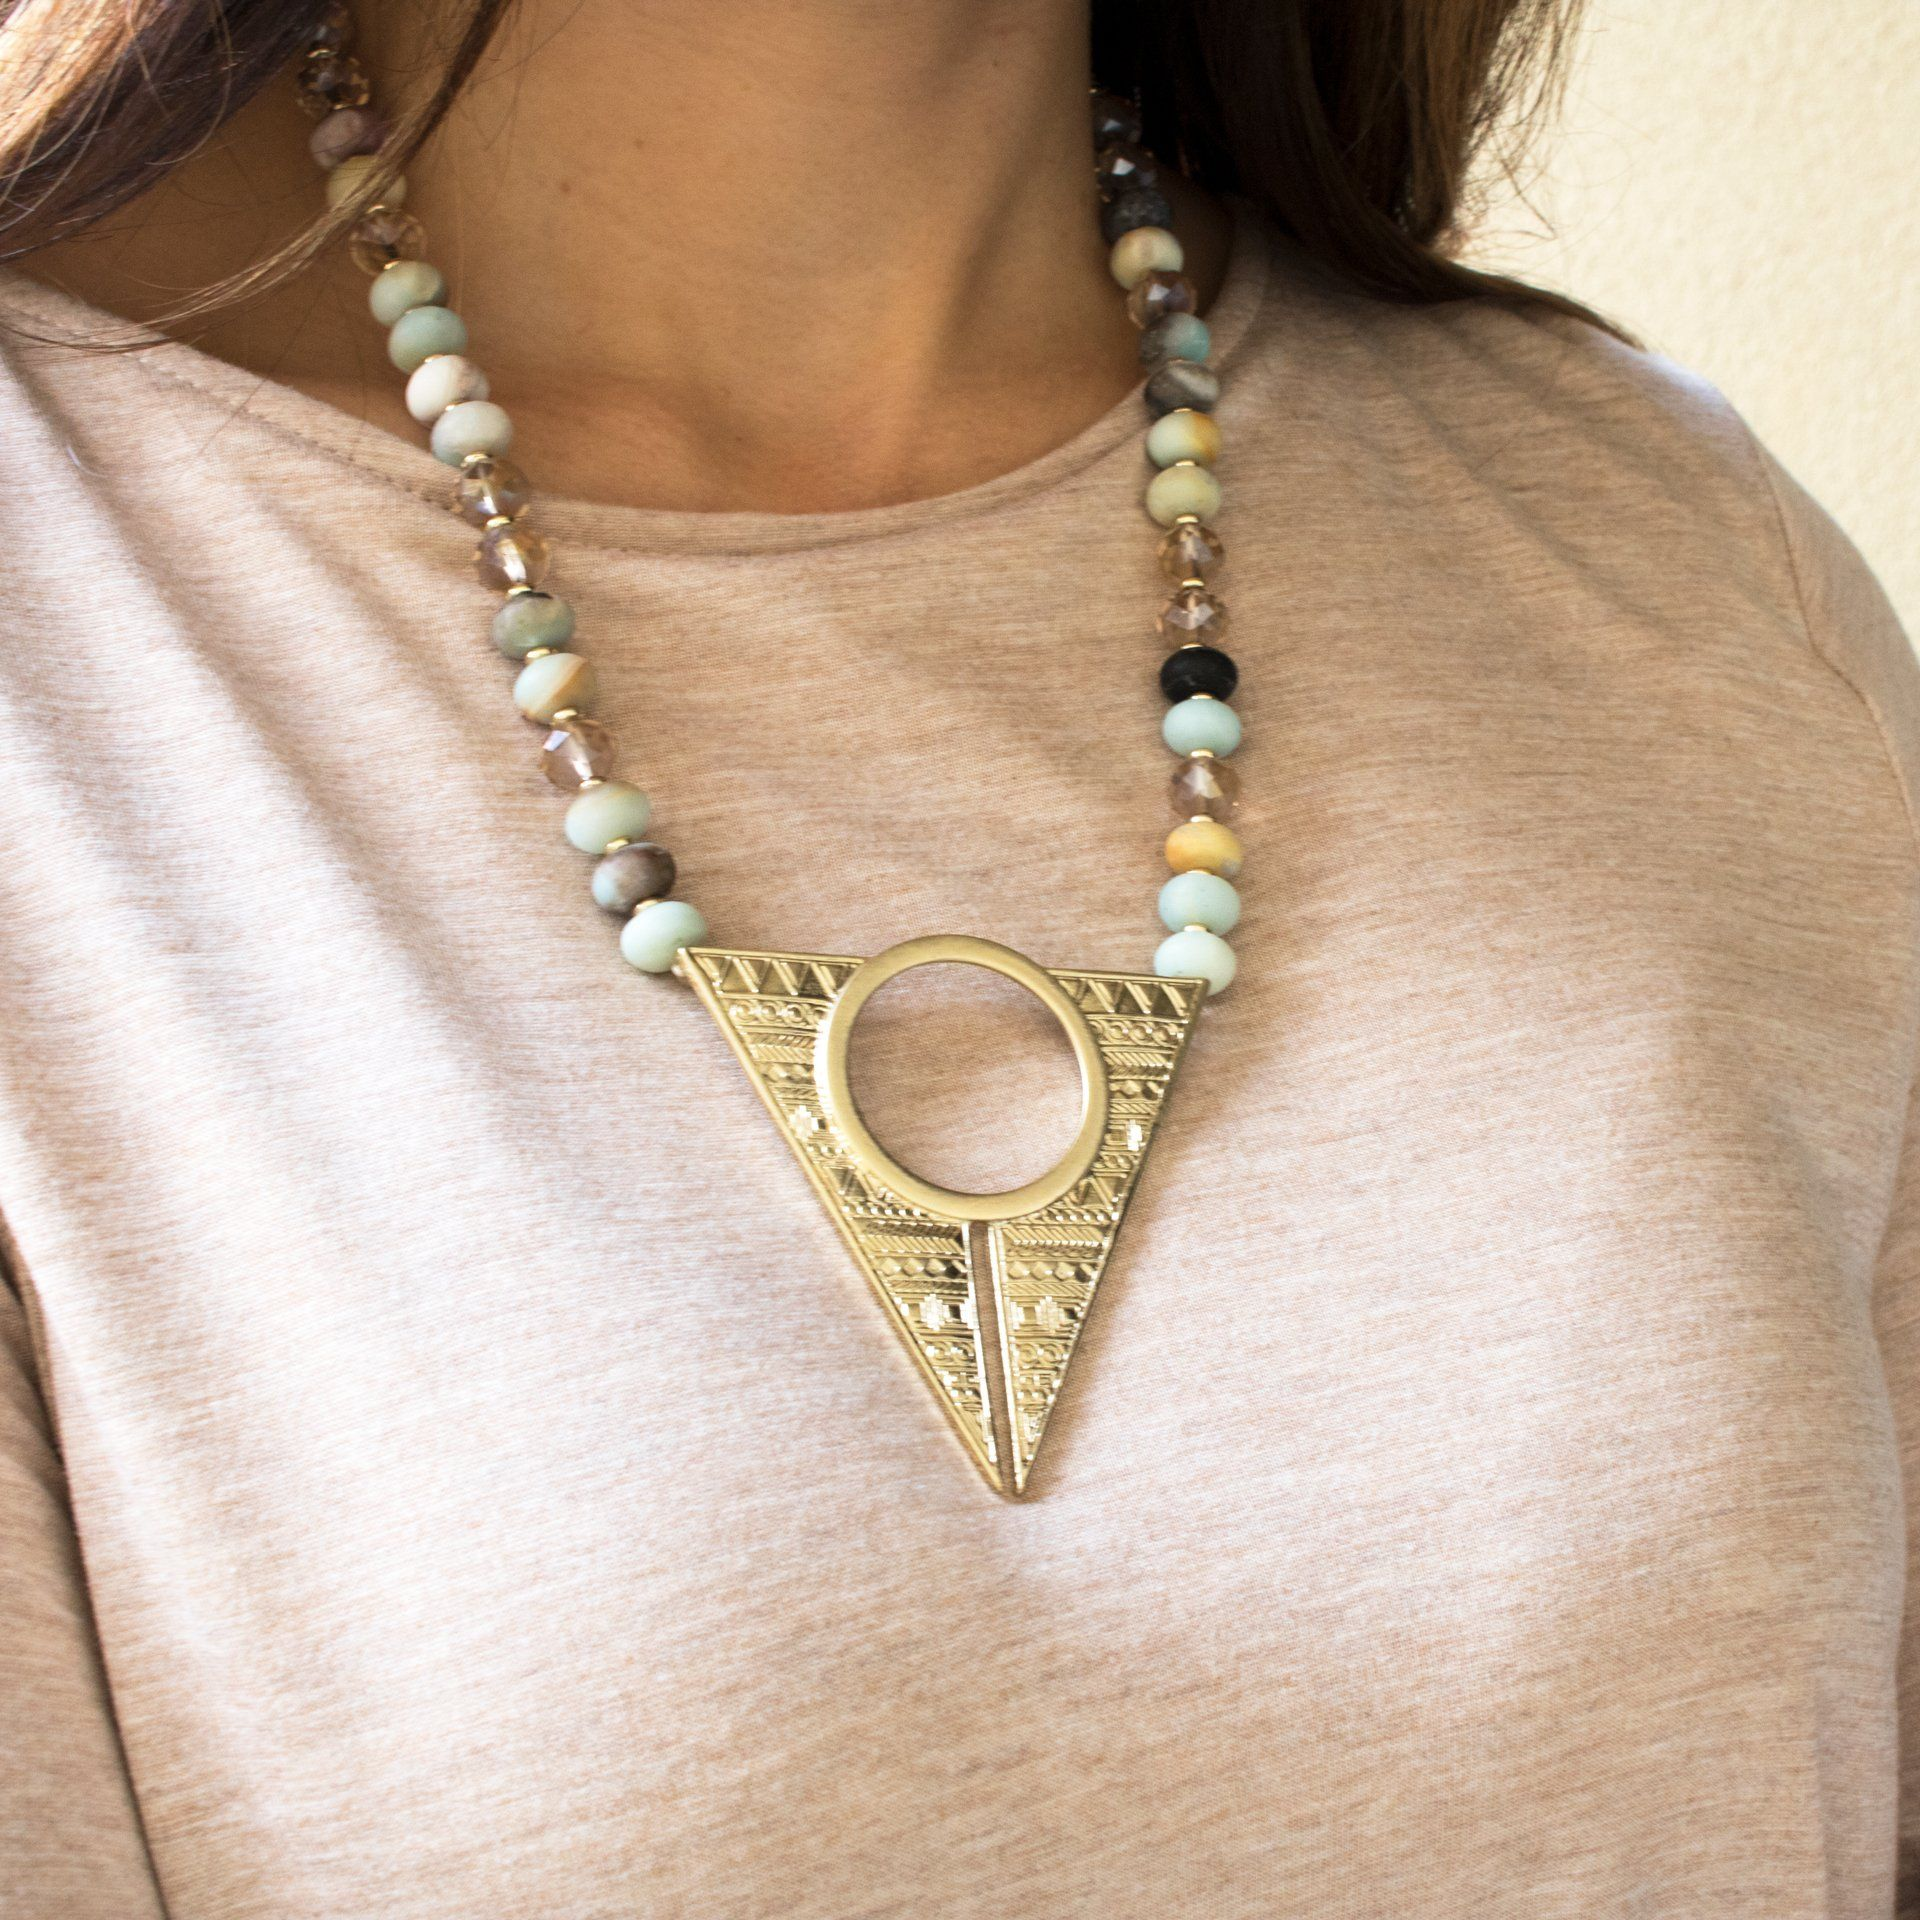 'Carina' Statement Necklace - Arlo and Arrows